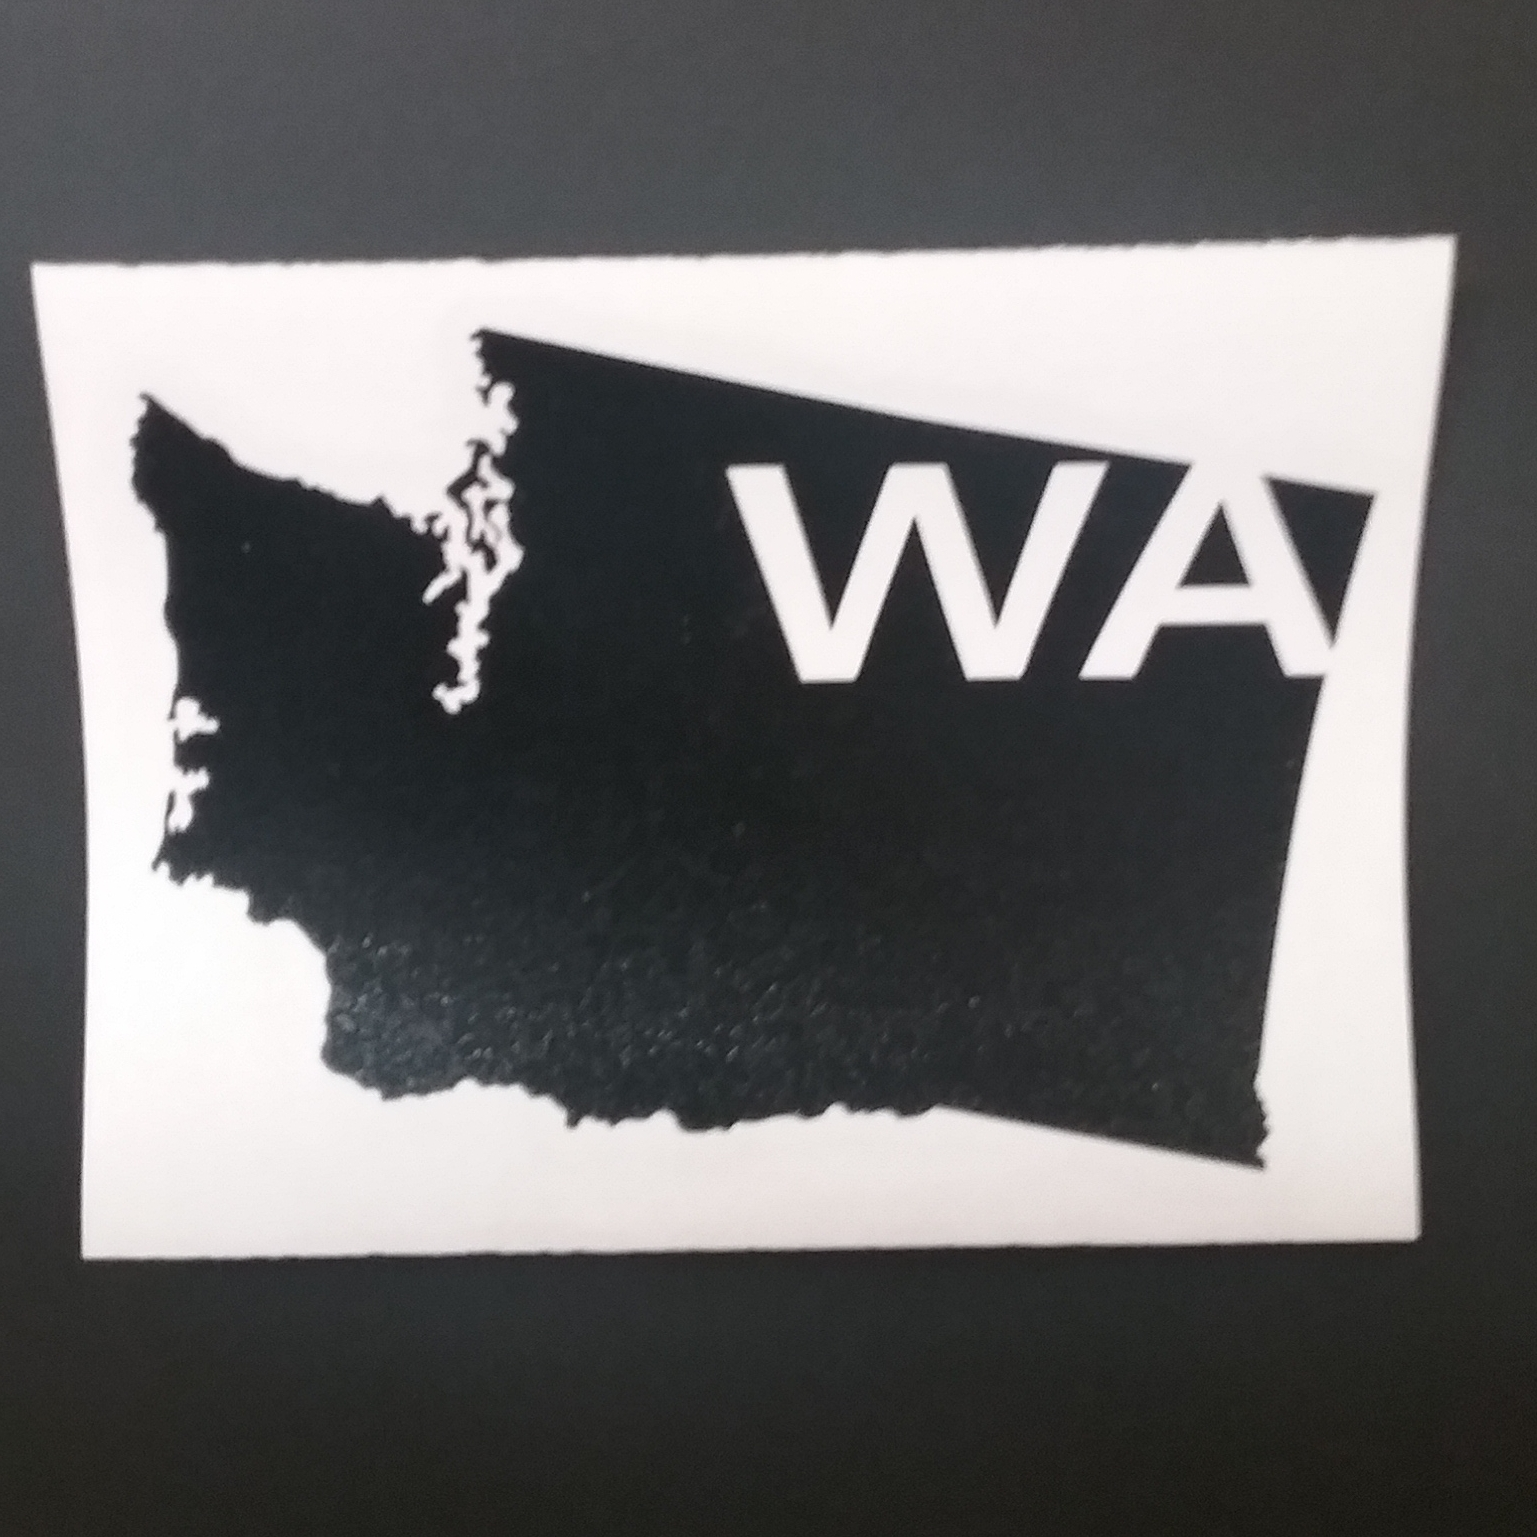 Washington Map Vinyl